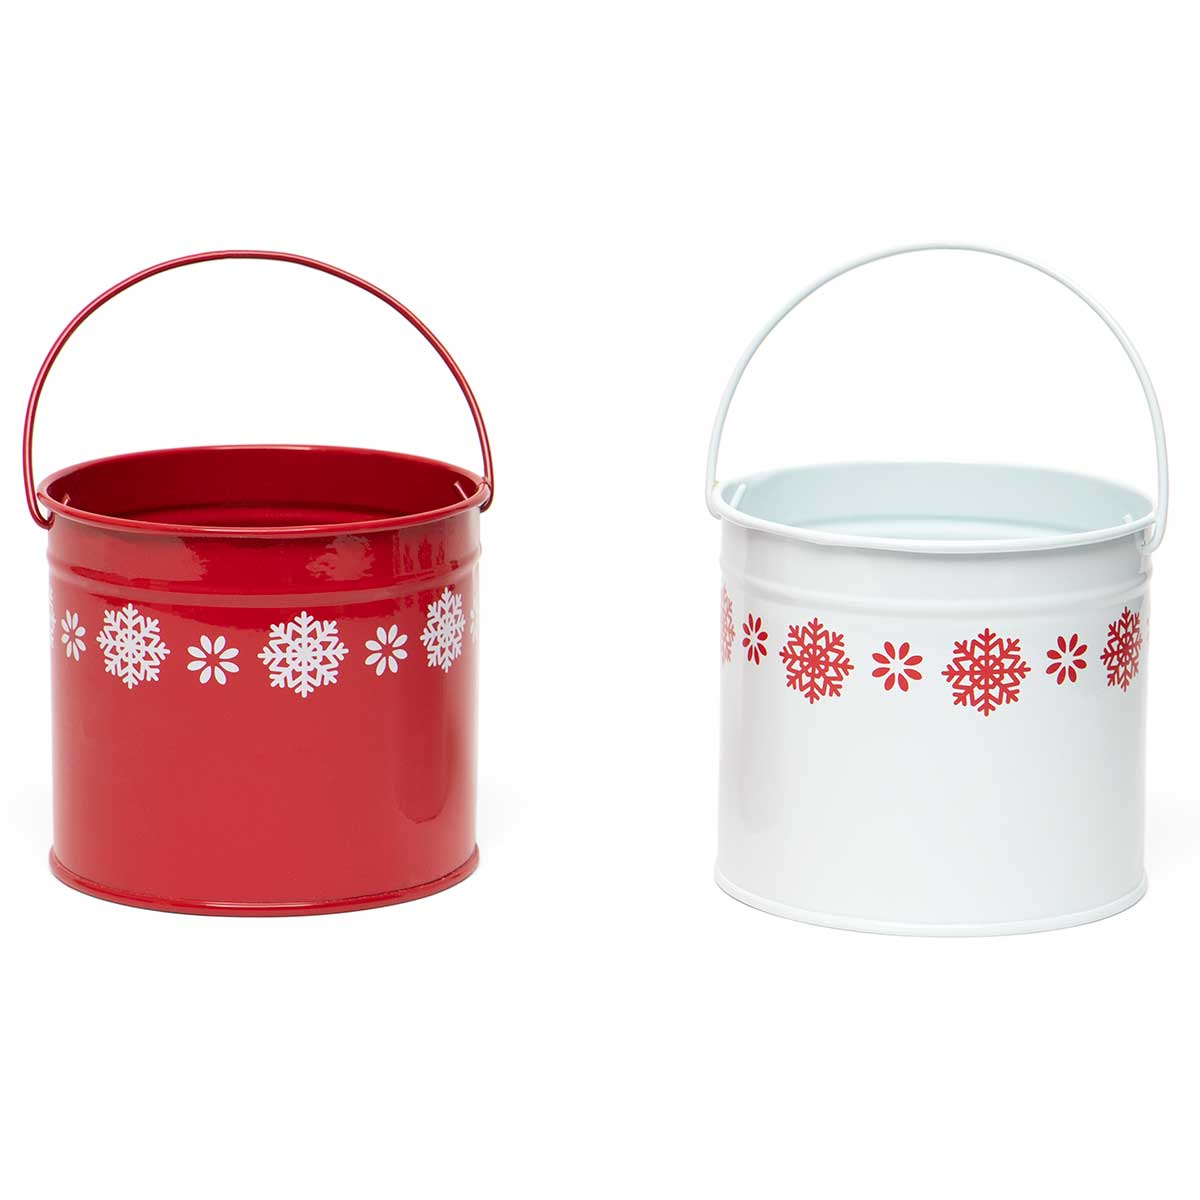 SNOWFLAKE METAL PAIL WITH HANDLE RED/WHITE 2 ASSORTED